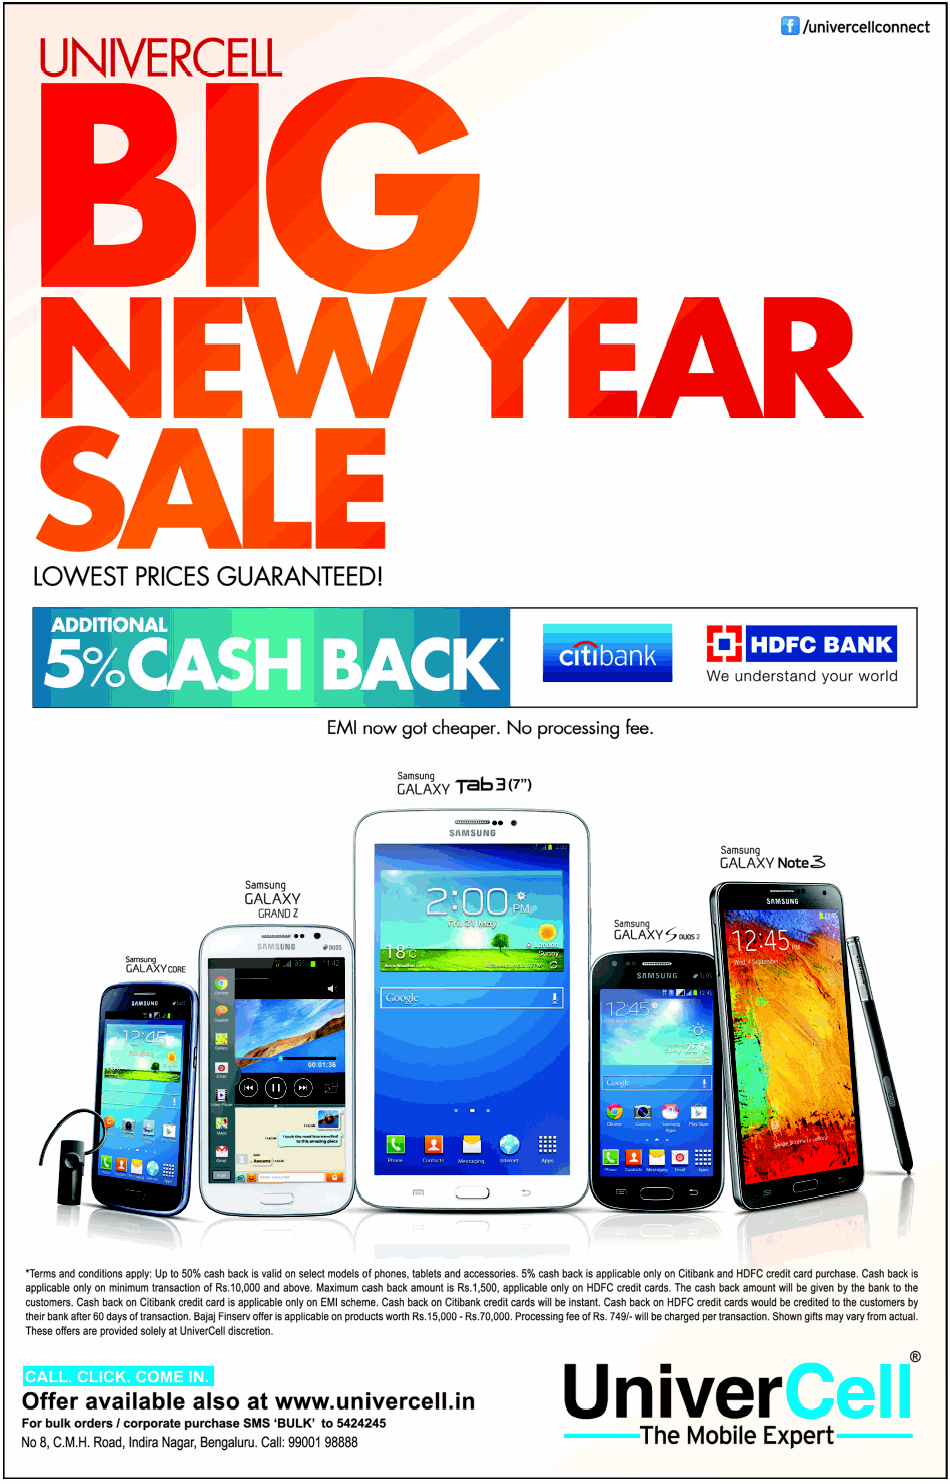 UniverCell - Big New Year Sale